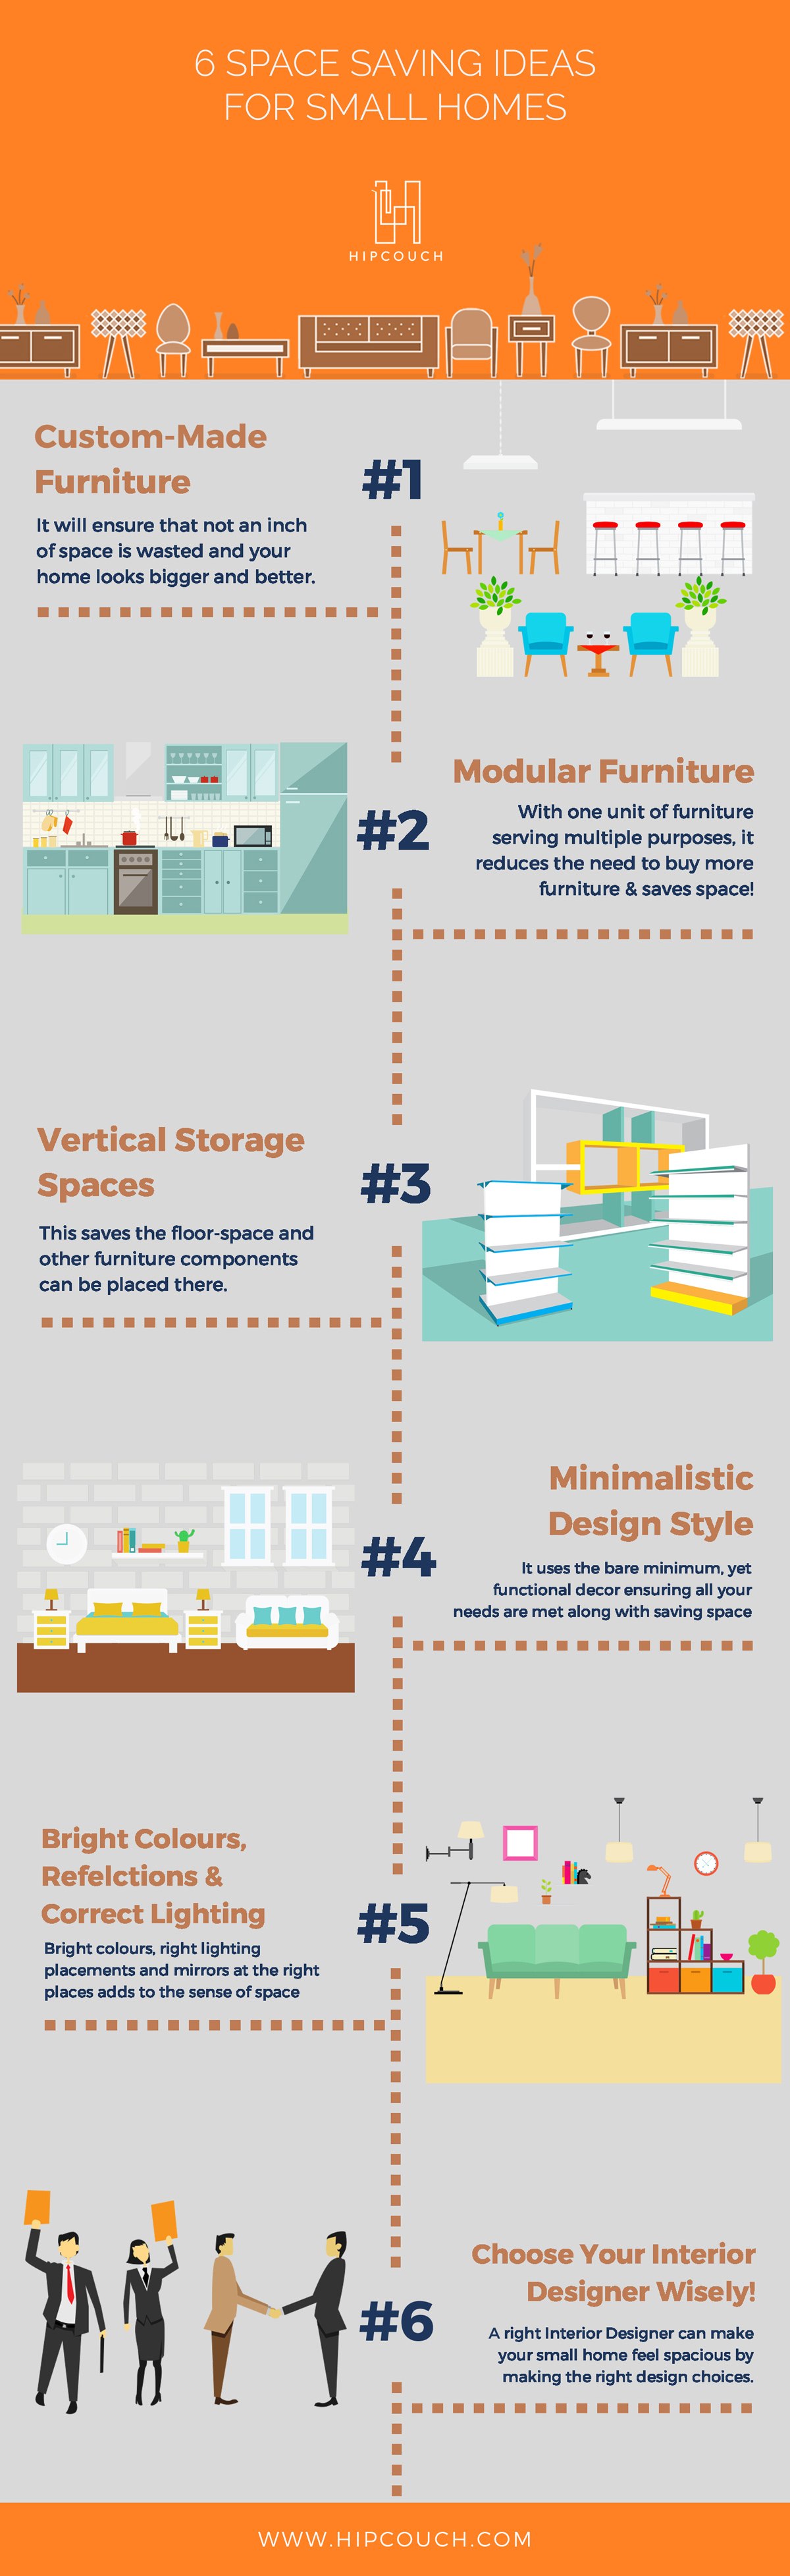 6 Space Saving Ideas For Small Homes